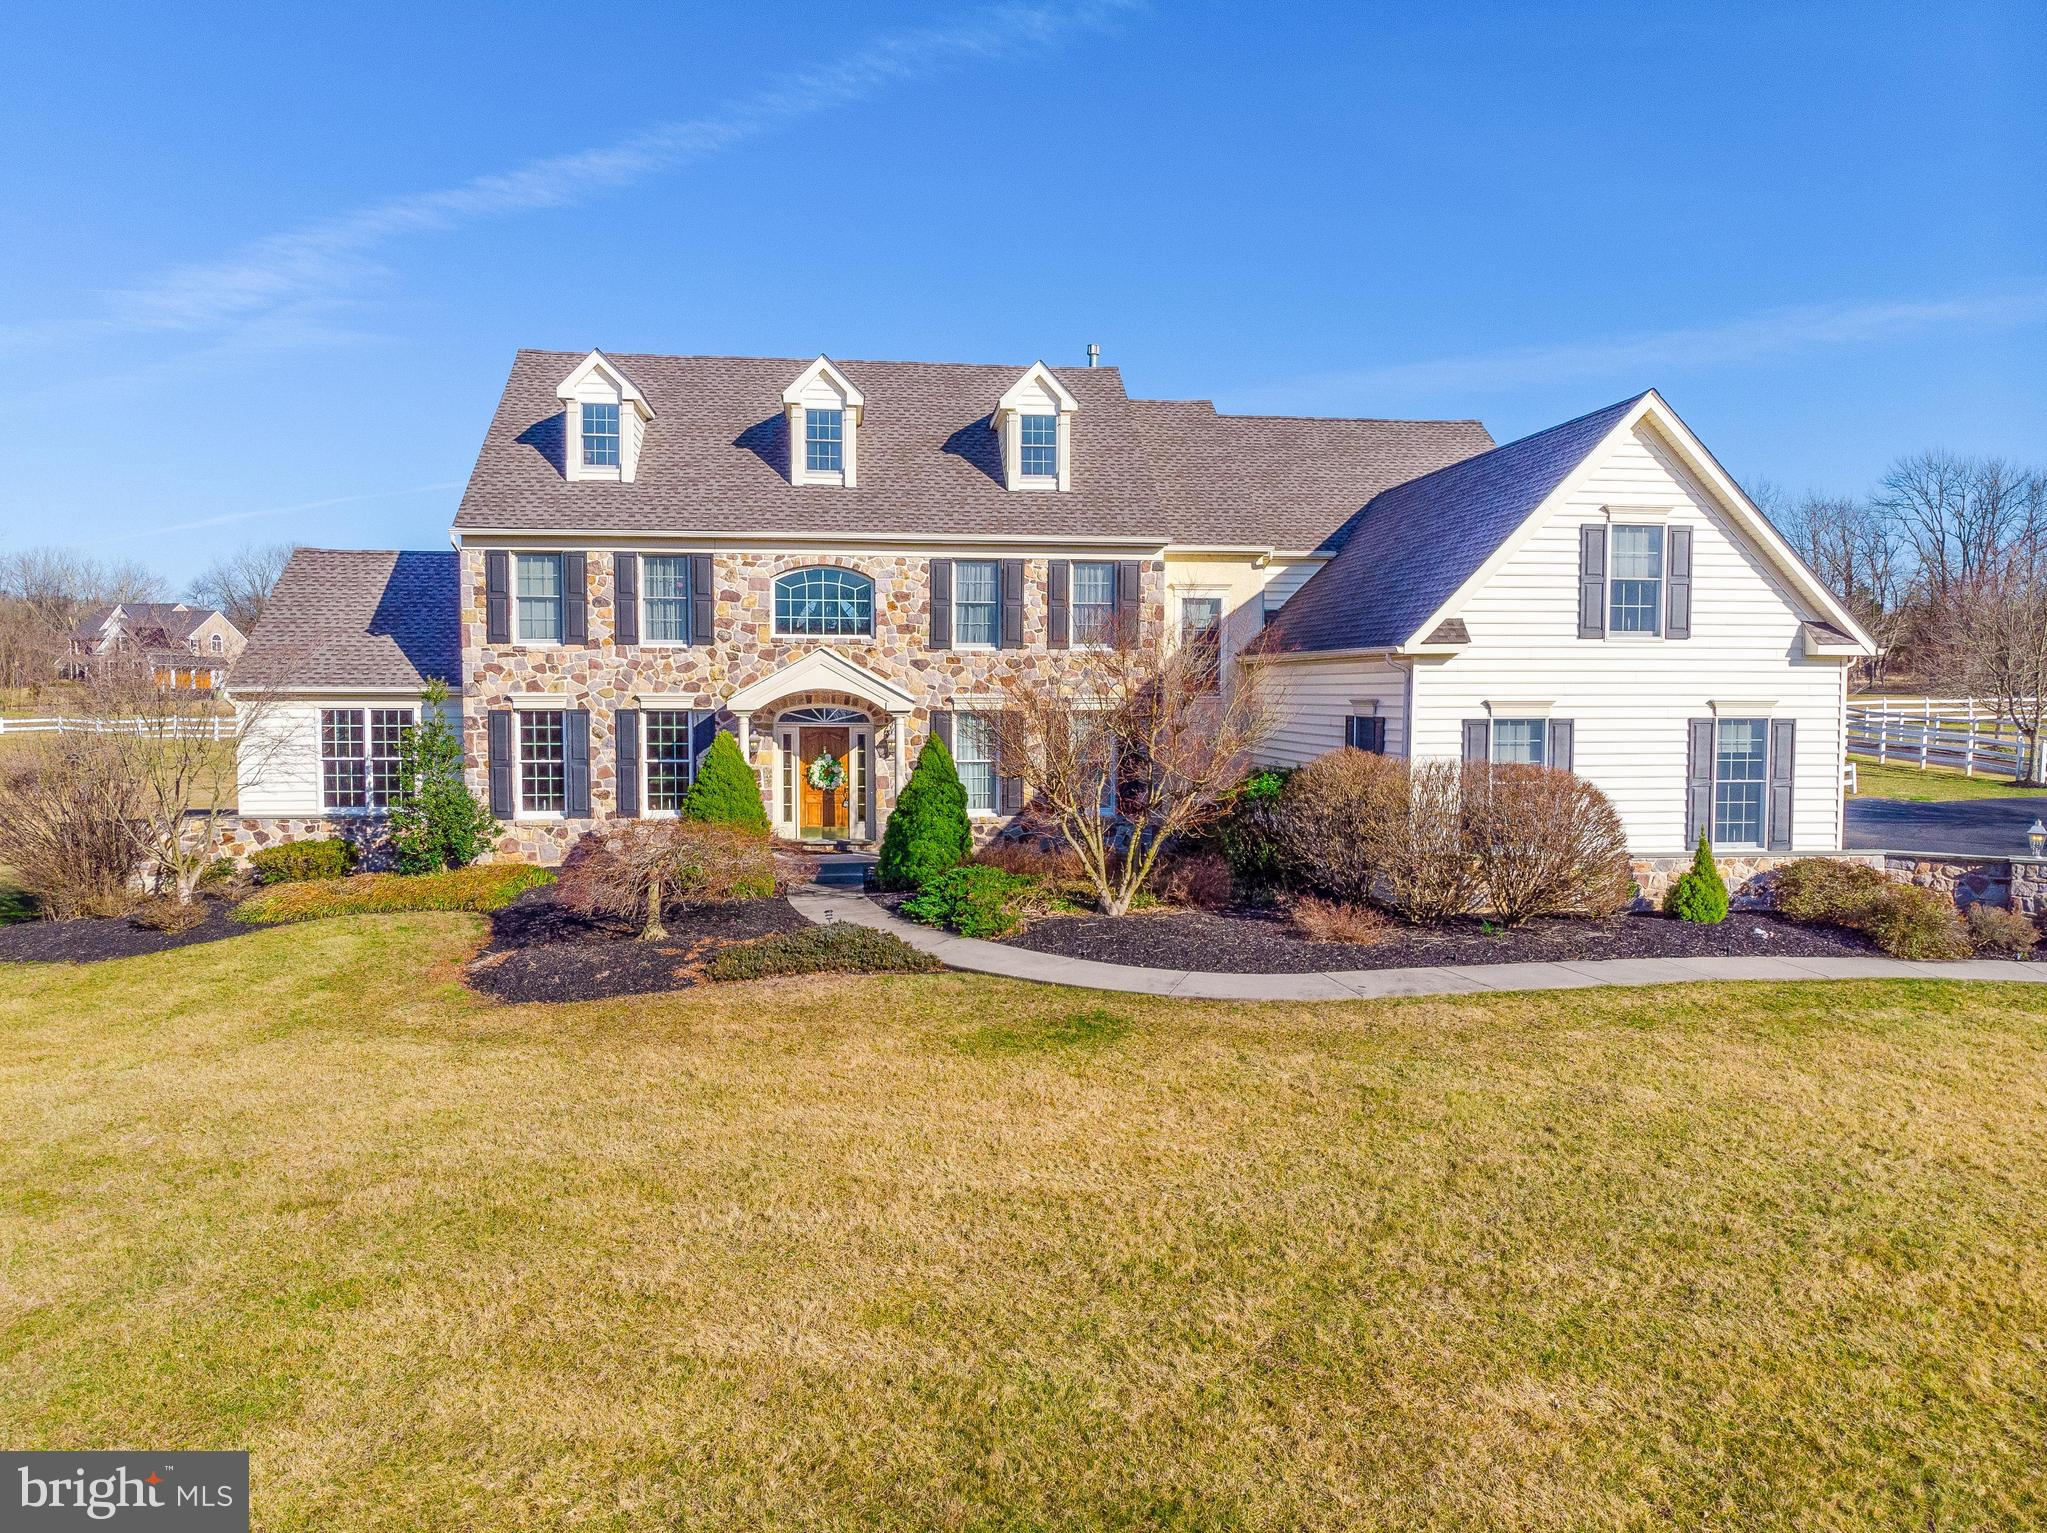 2335 OLD FORTY FOOT ROAD, HARLEYSVILLE, PA 19438